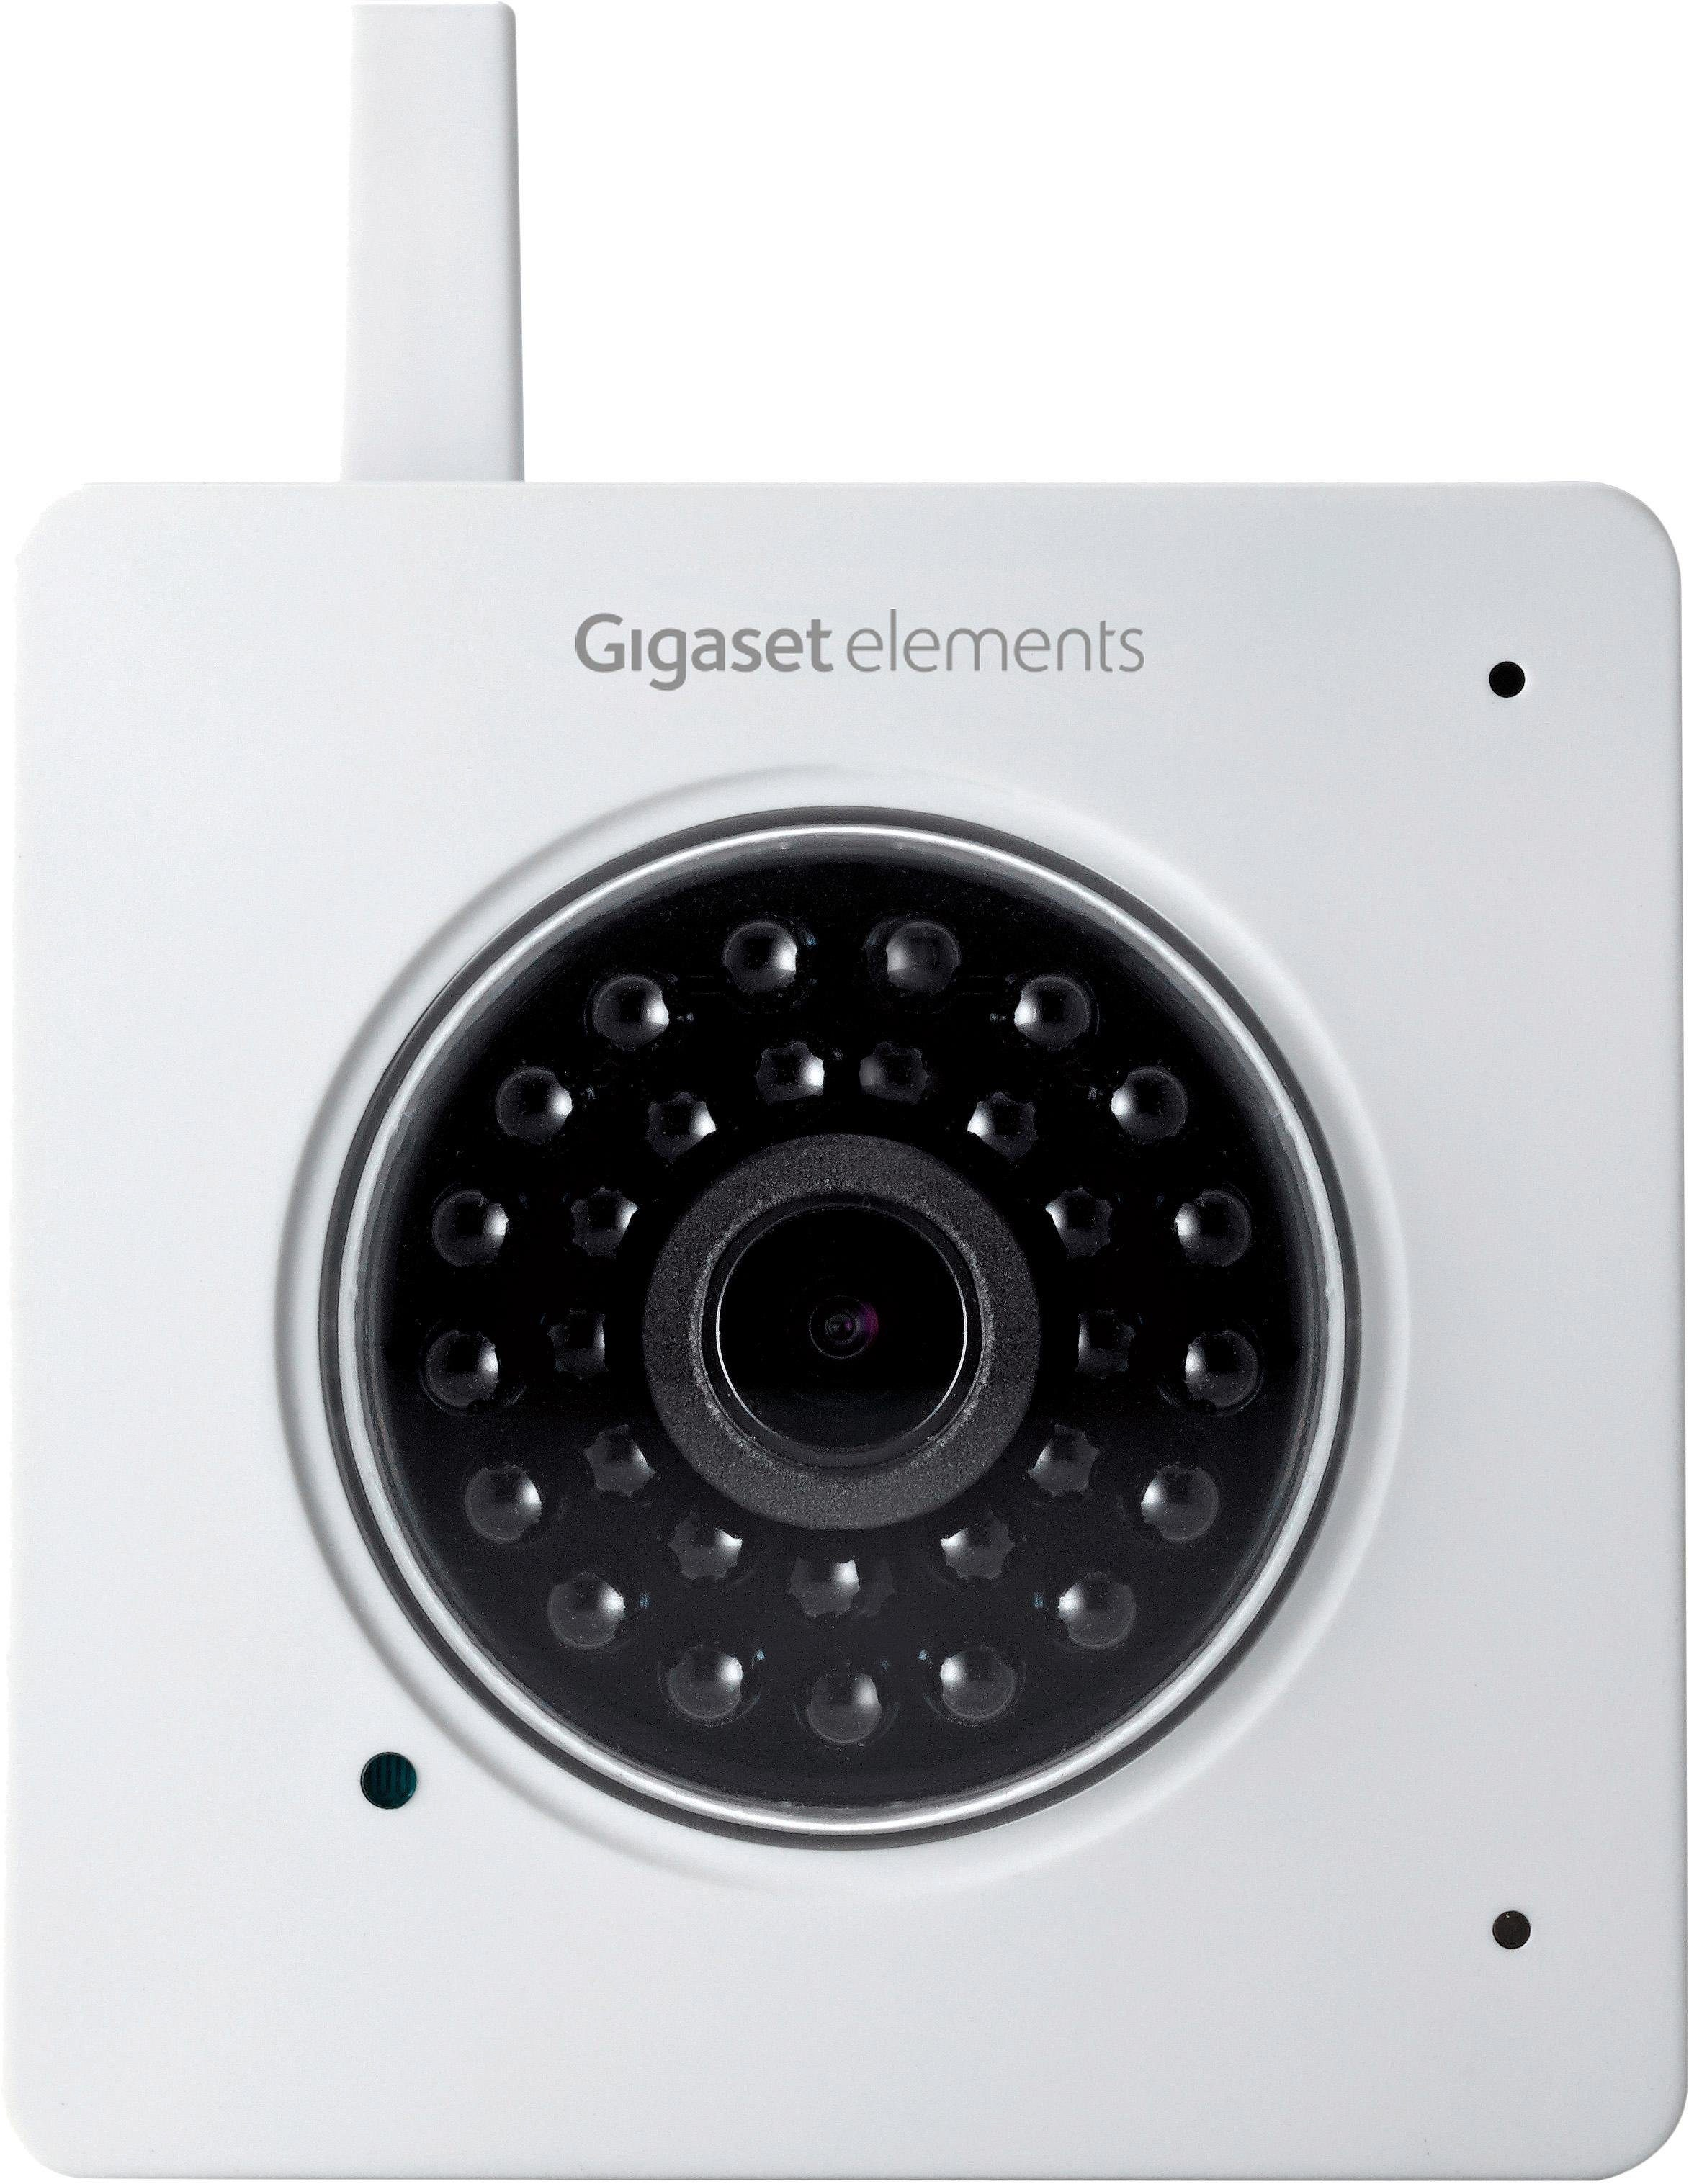 Gigaset elements Indoor-Kamera